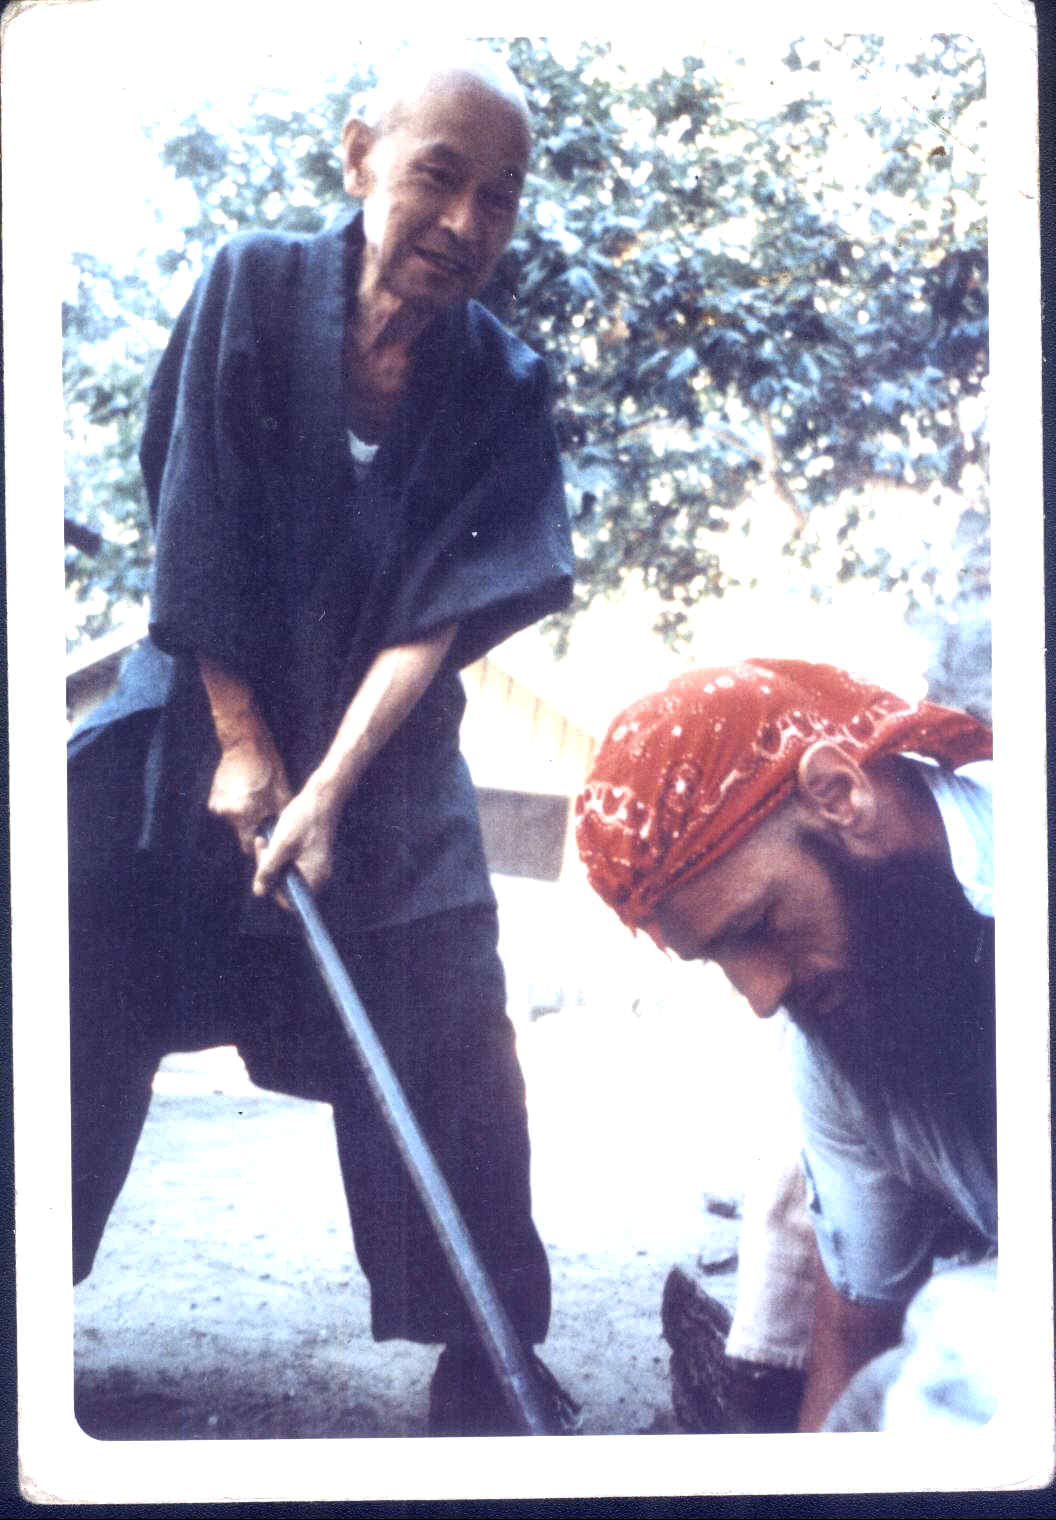 Whats New 2010 Zowie Blus Printed Top L1726 4 23 10 Bob Walter Is Visiting Here He With Suzuki Roshi At Tassajara In About 1970